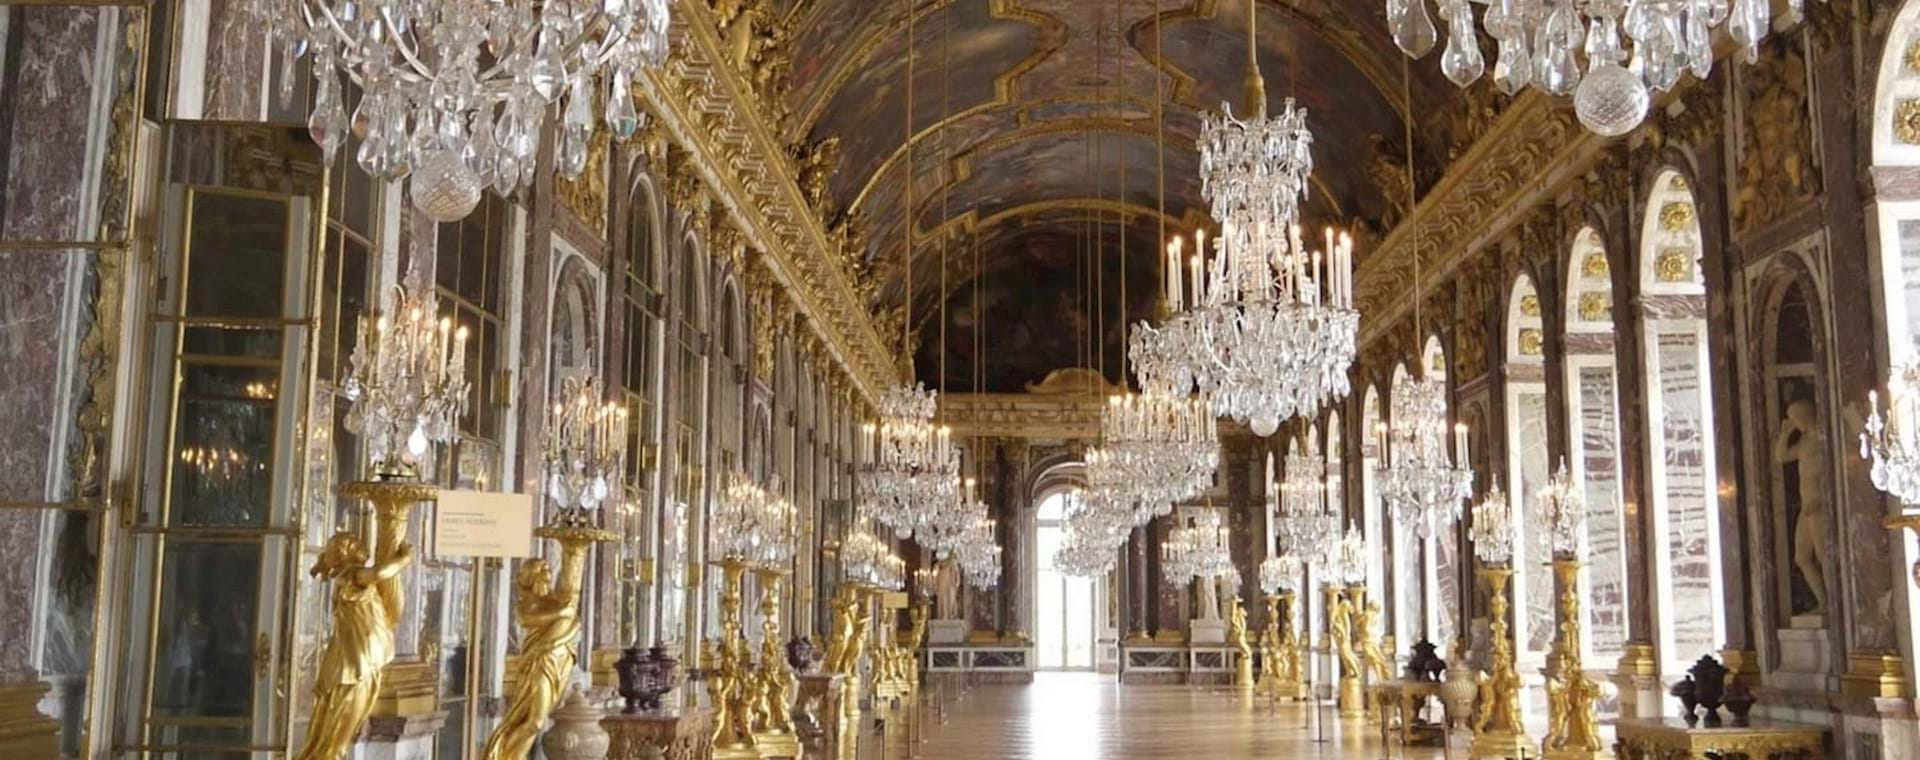 Versailles Palace & Gardens Tour for Families from Versailles with Fountain Show